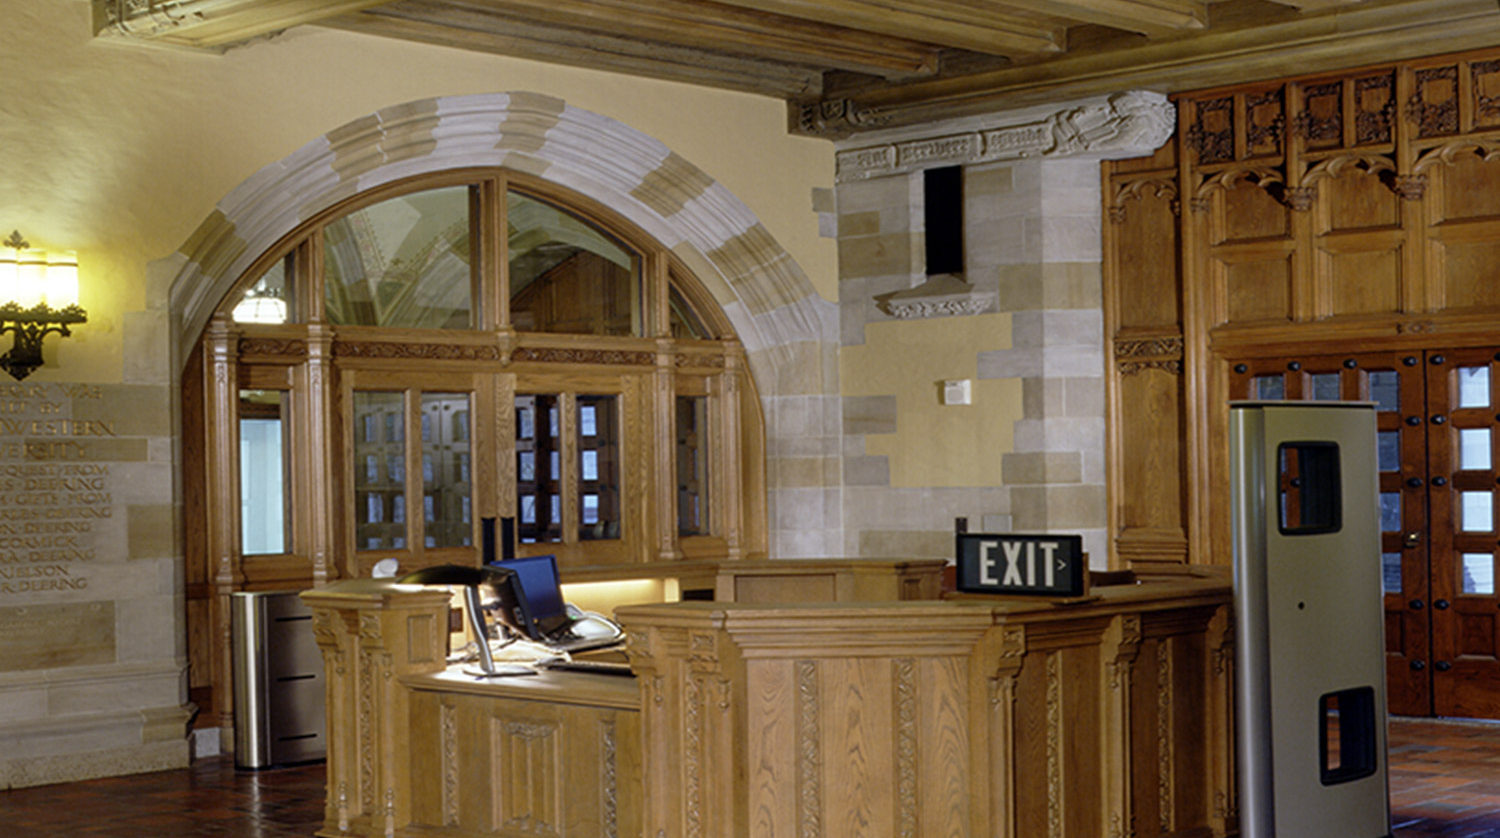 Northwestern University Deering Library interior-two